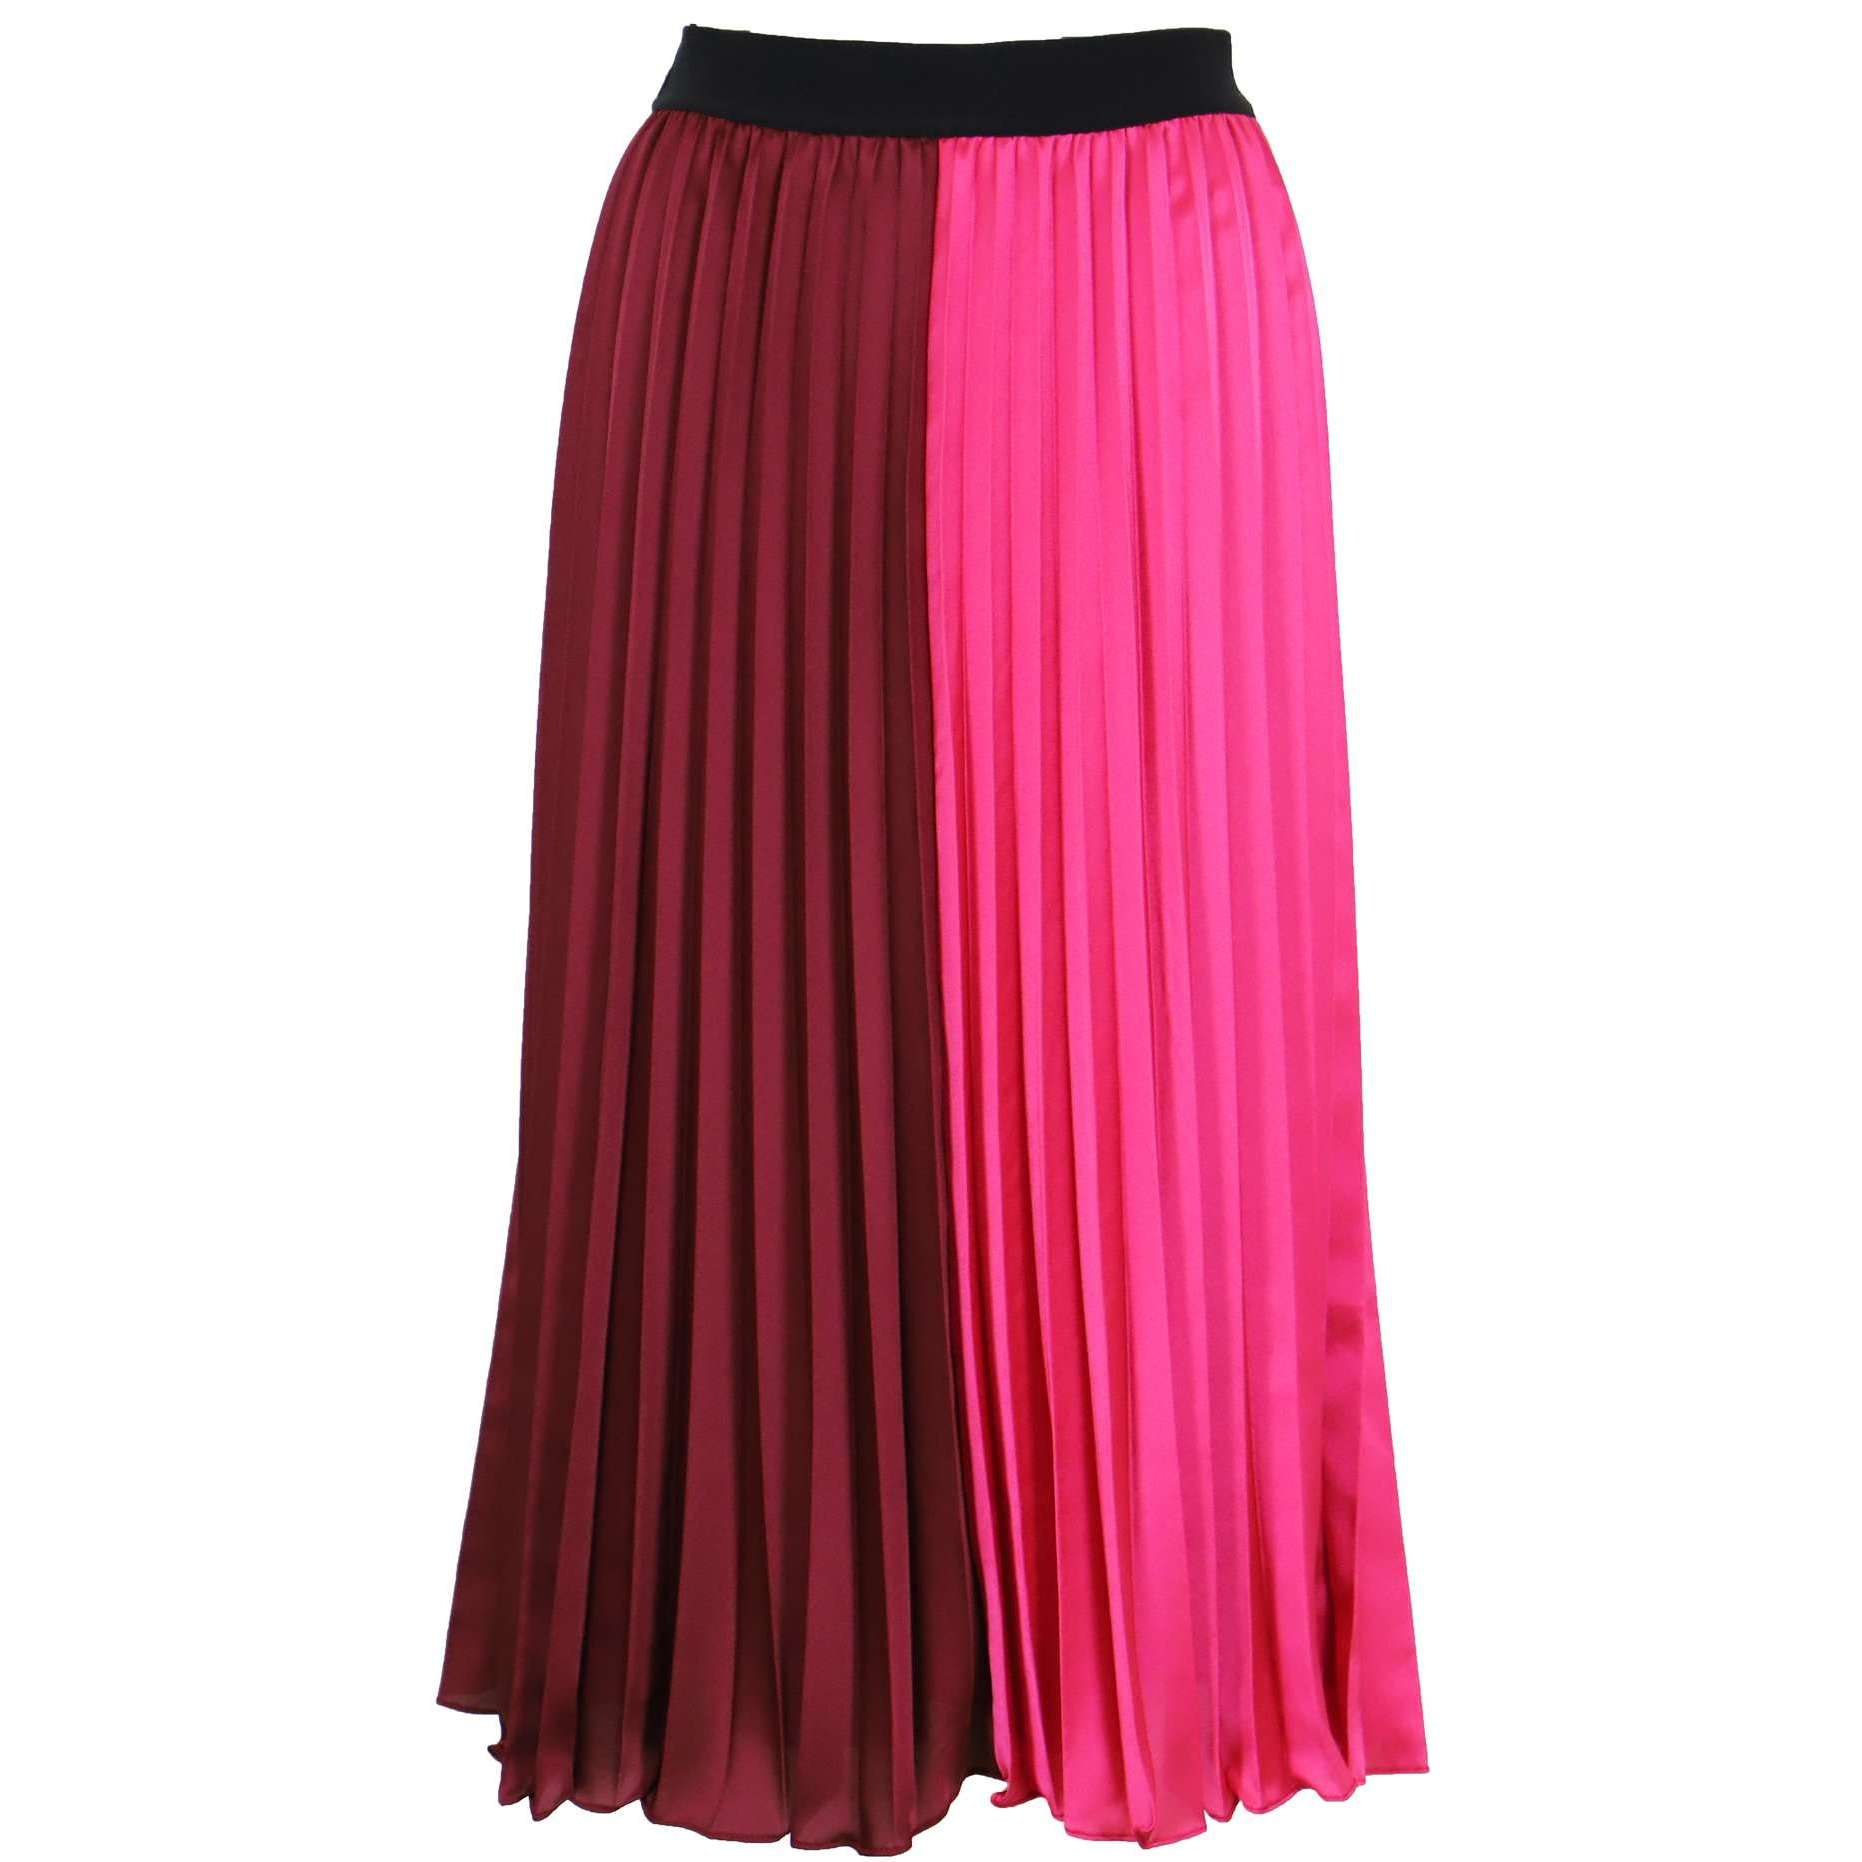 8.28 Boutique:LUCY PARIS,Lucy Paris Frances Color Block Skirt,Bottoms